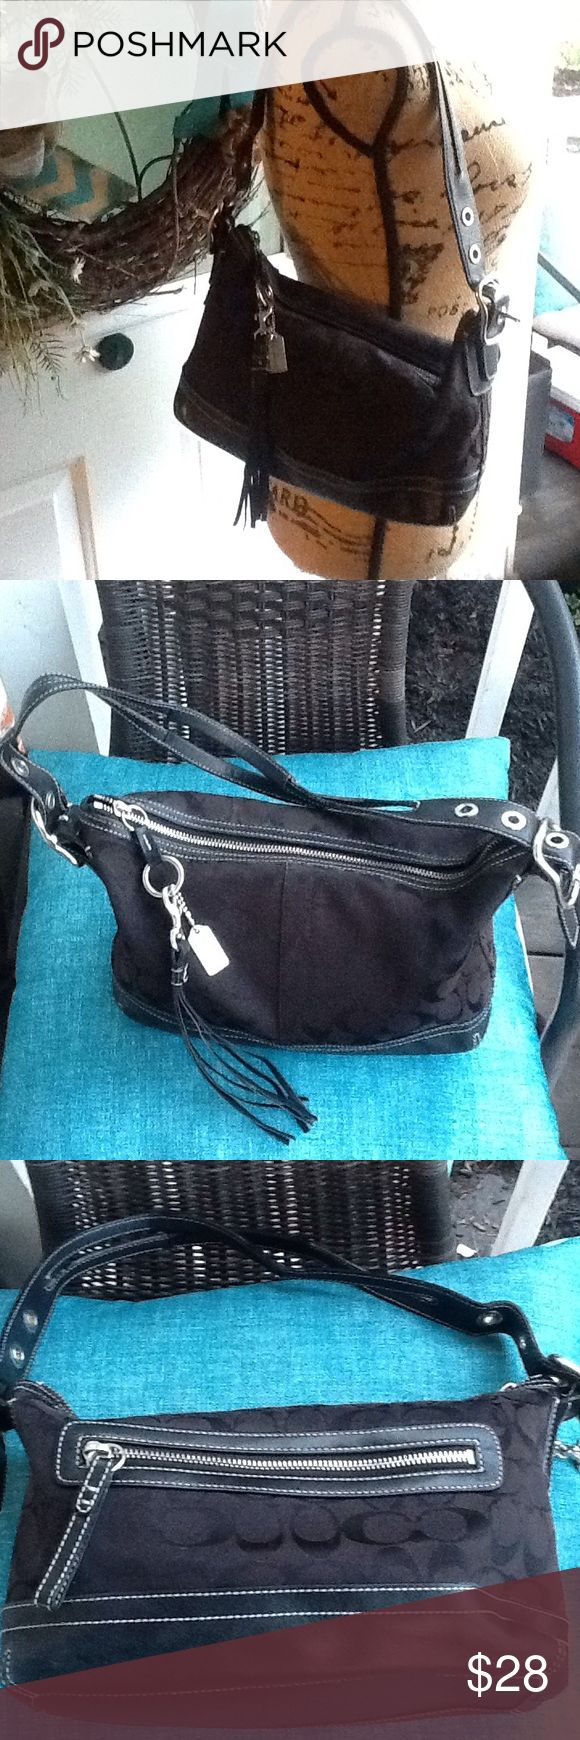 """Coach shoulder bag Nice little bag,measures 12""""by7"""" straps measure 10"""" inside and outside are in great condition Bags Shoulder Bags"""